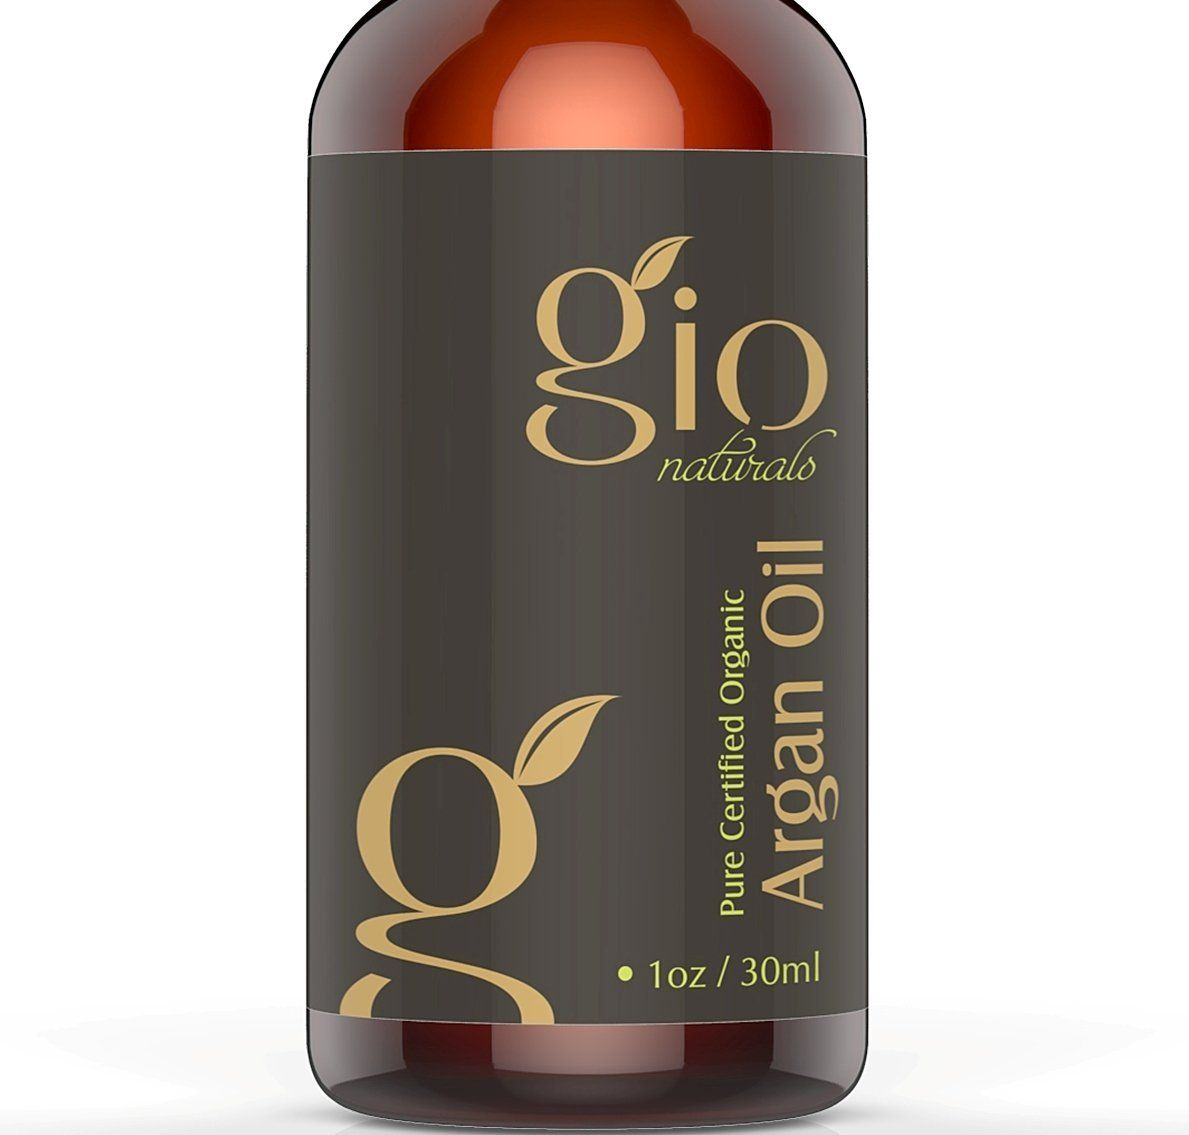 Gio Naturals Certified Organic Cold Pressed Virgin Moroccan Argan